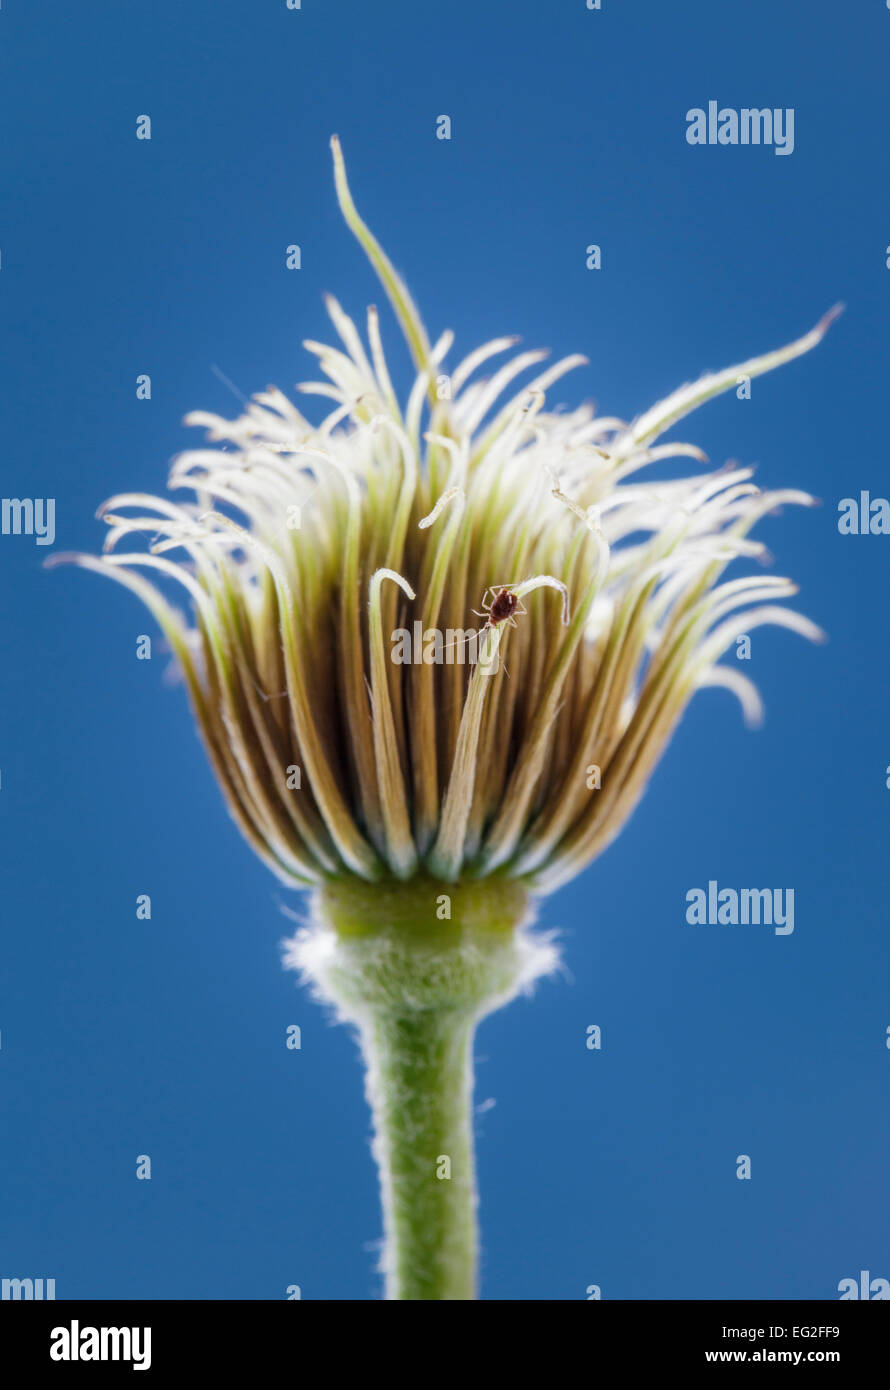 Clematis Seed Head  Nelly Moser - Stock Image